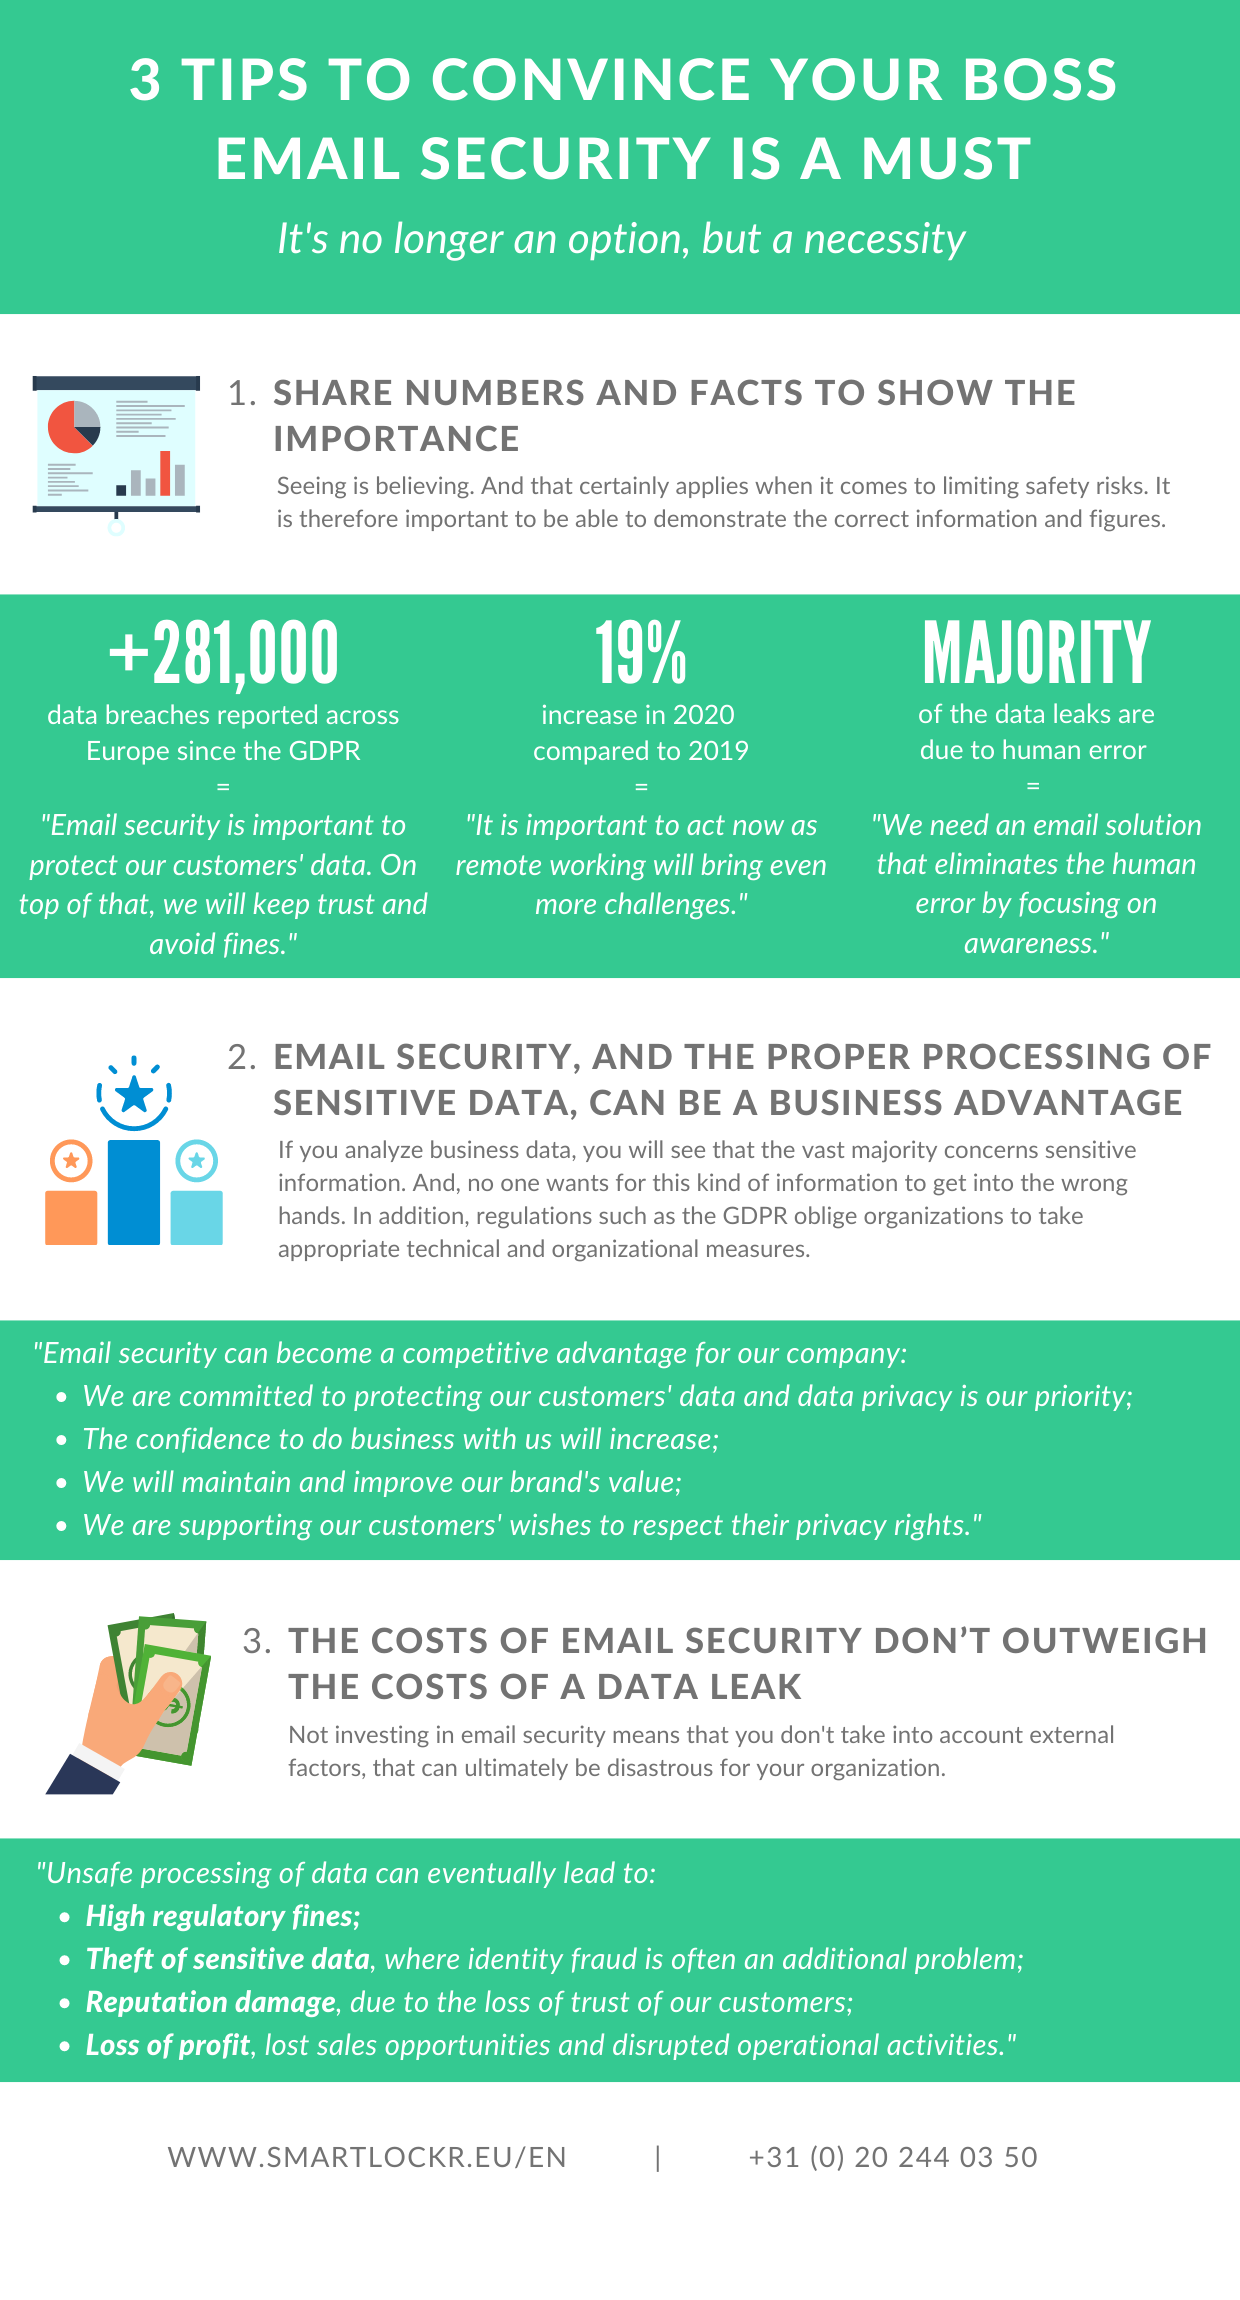 3 Tips to convince your boss of email security ROI